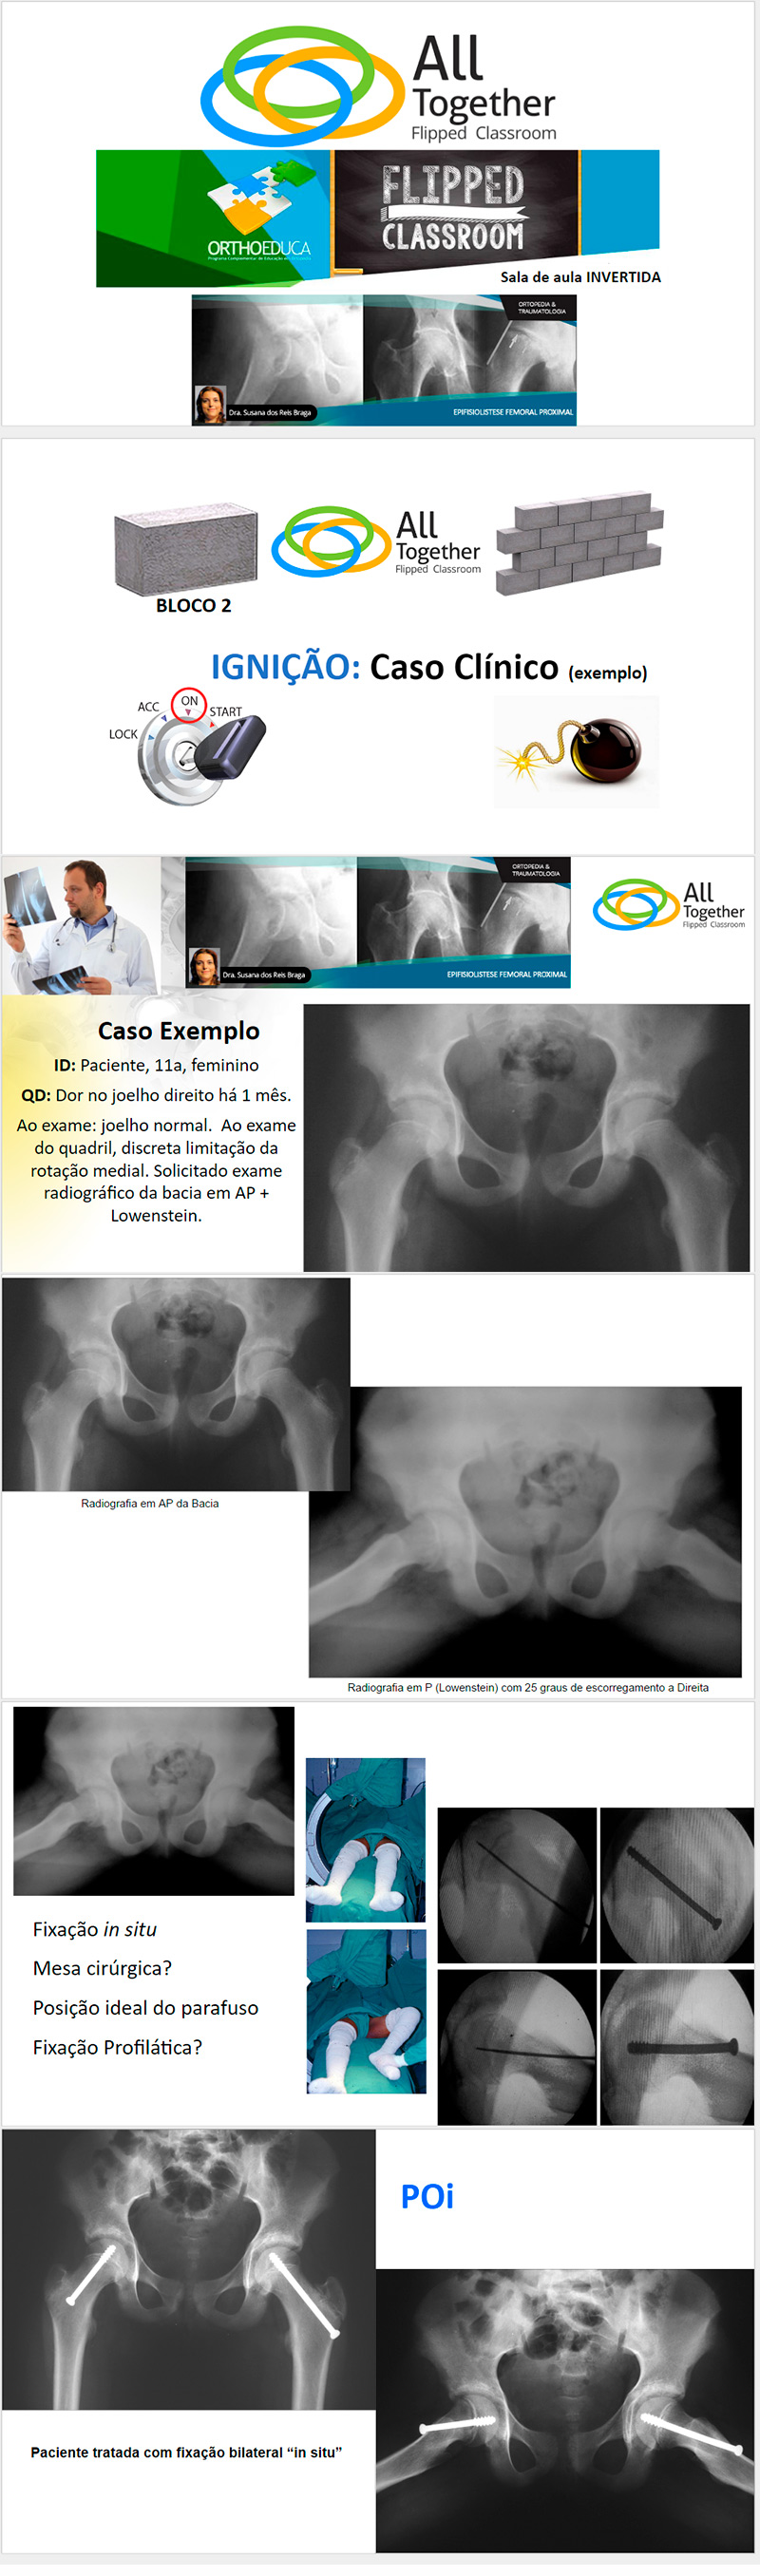 Epifisiolistese Femoral Proximal - Caso clínico de hoje no All Together às 12h Participe!